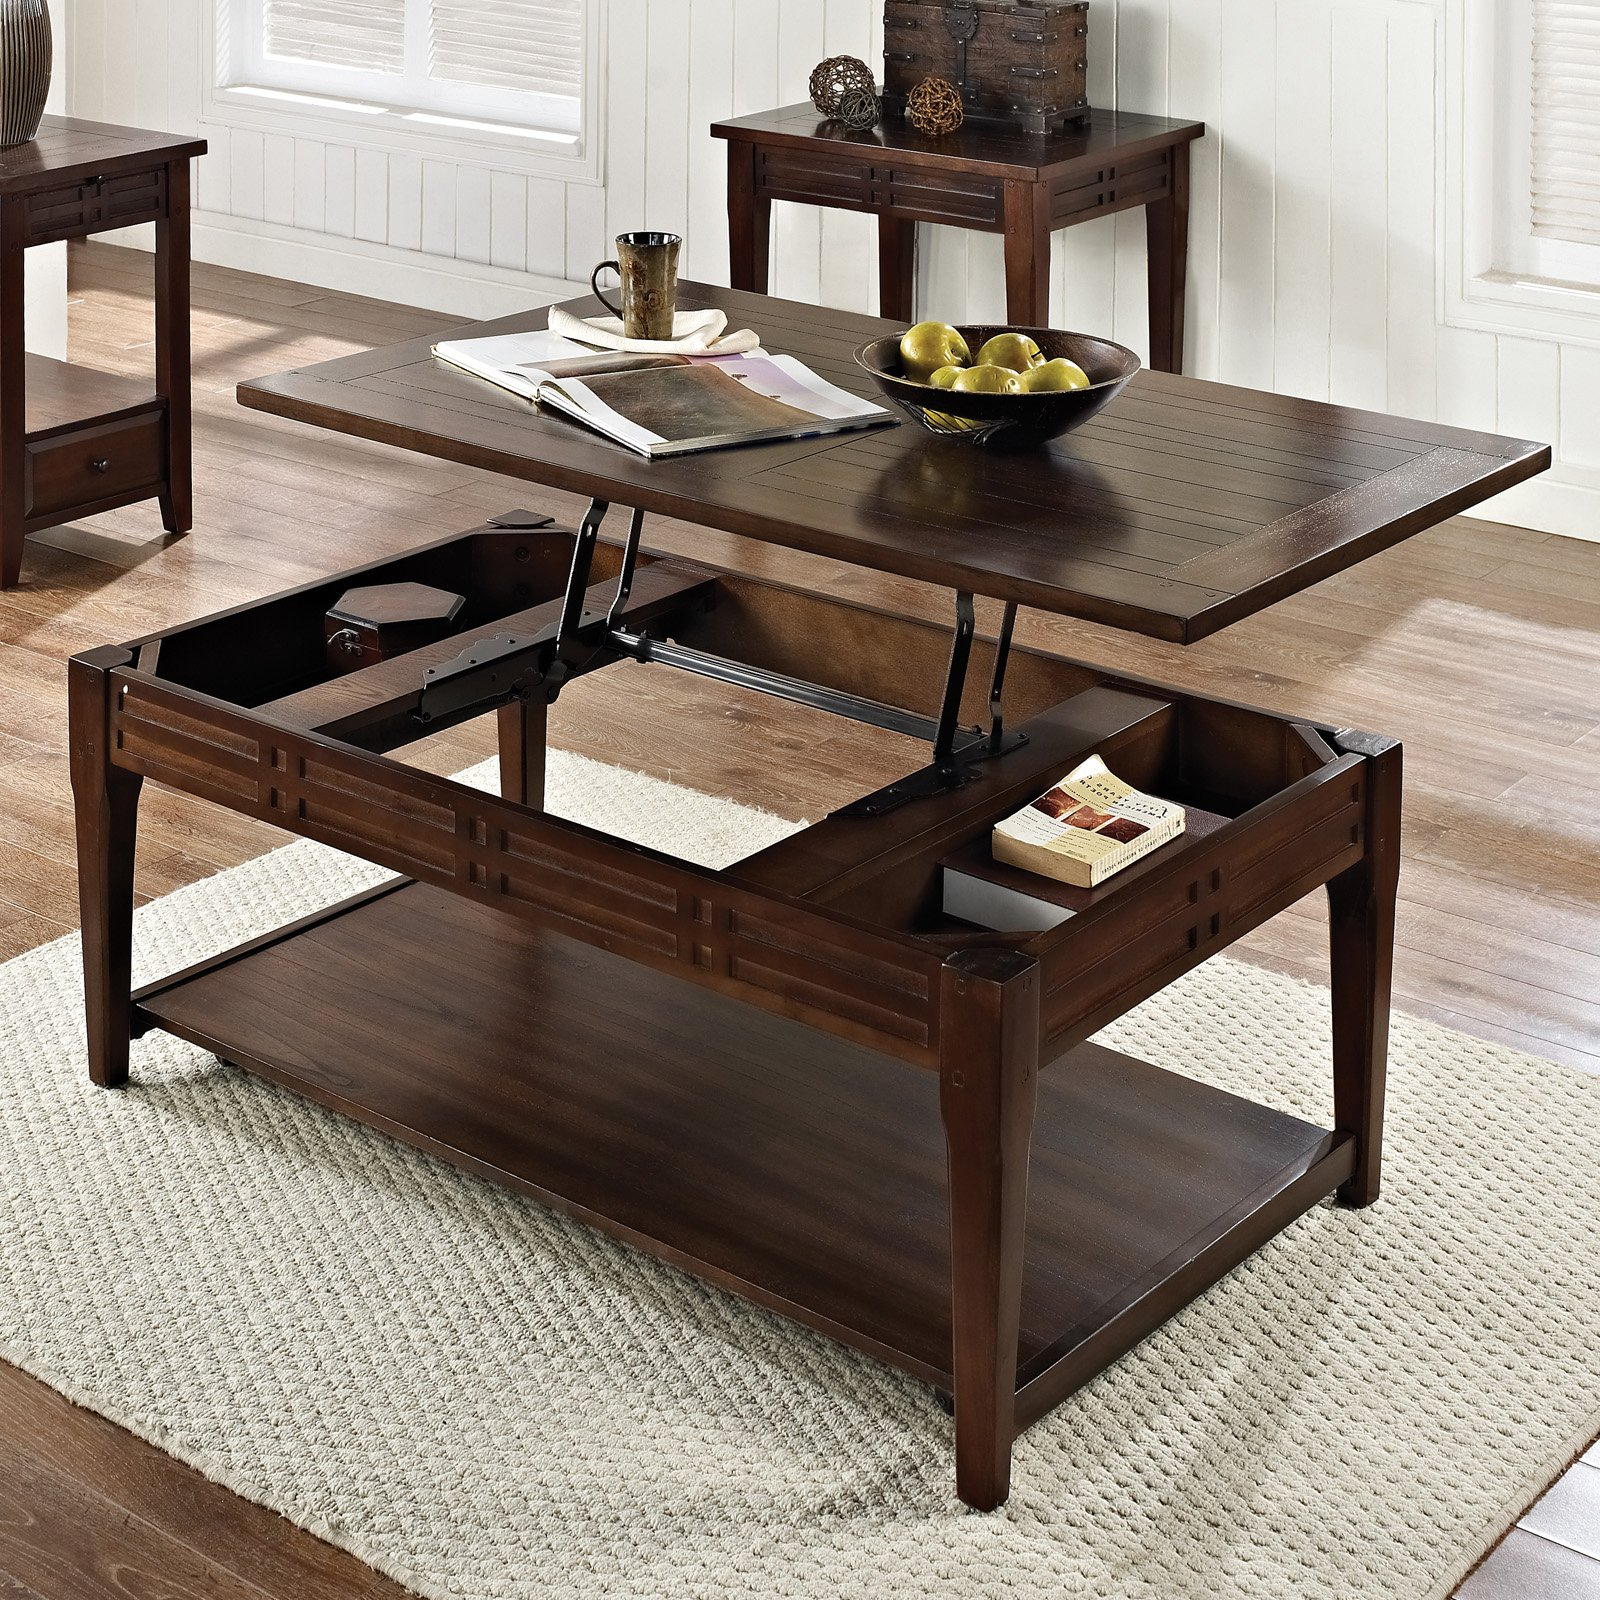 Crestline Lift Top Cocktail Table W/casters – Walmart Within Favorite Shelter Cocktail Tables (View 13 of 20)